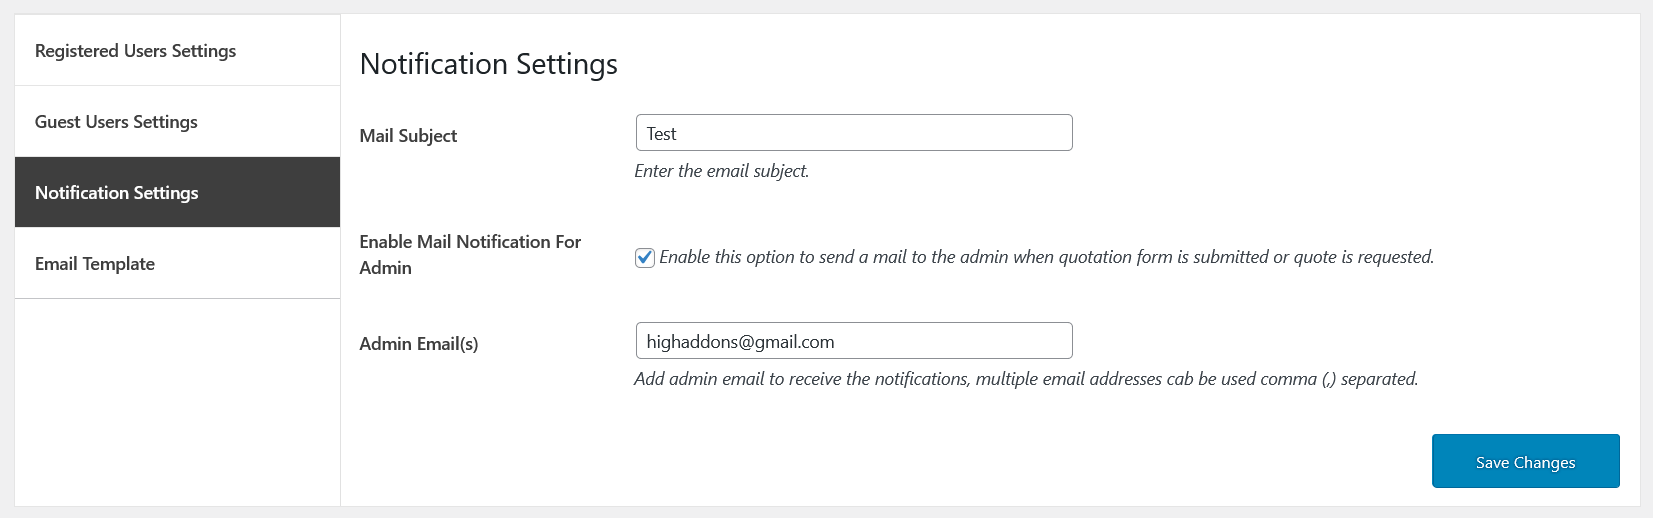 cart to quote notification settings